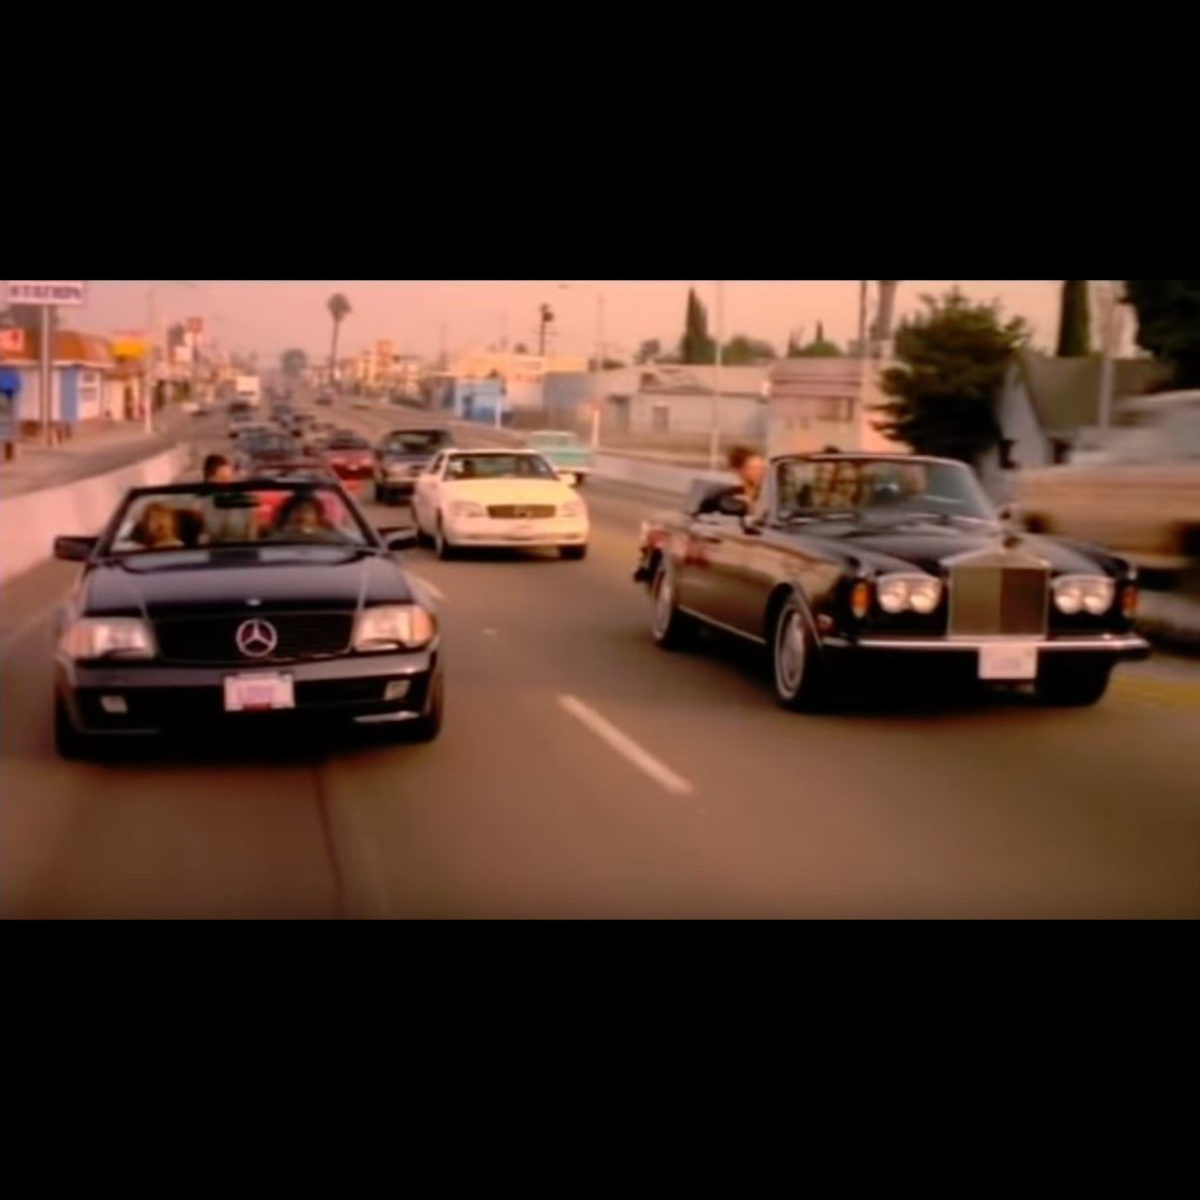 2Pac - California Love (ft. Dr. Dre and Roger Troutman) (Remix) (Thumbnail)